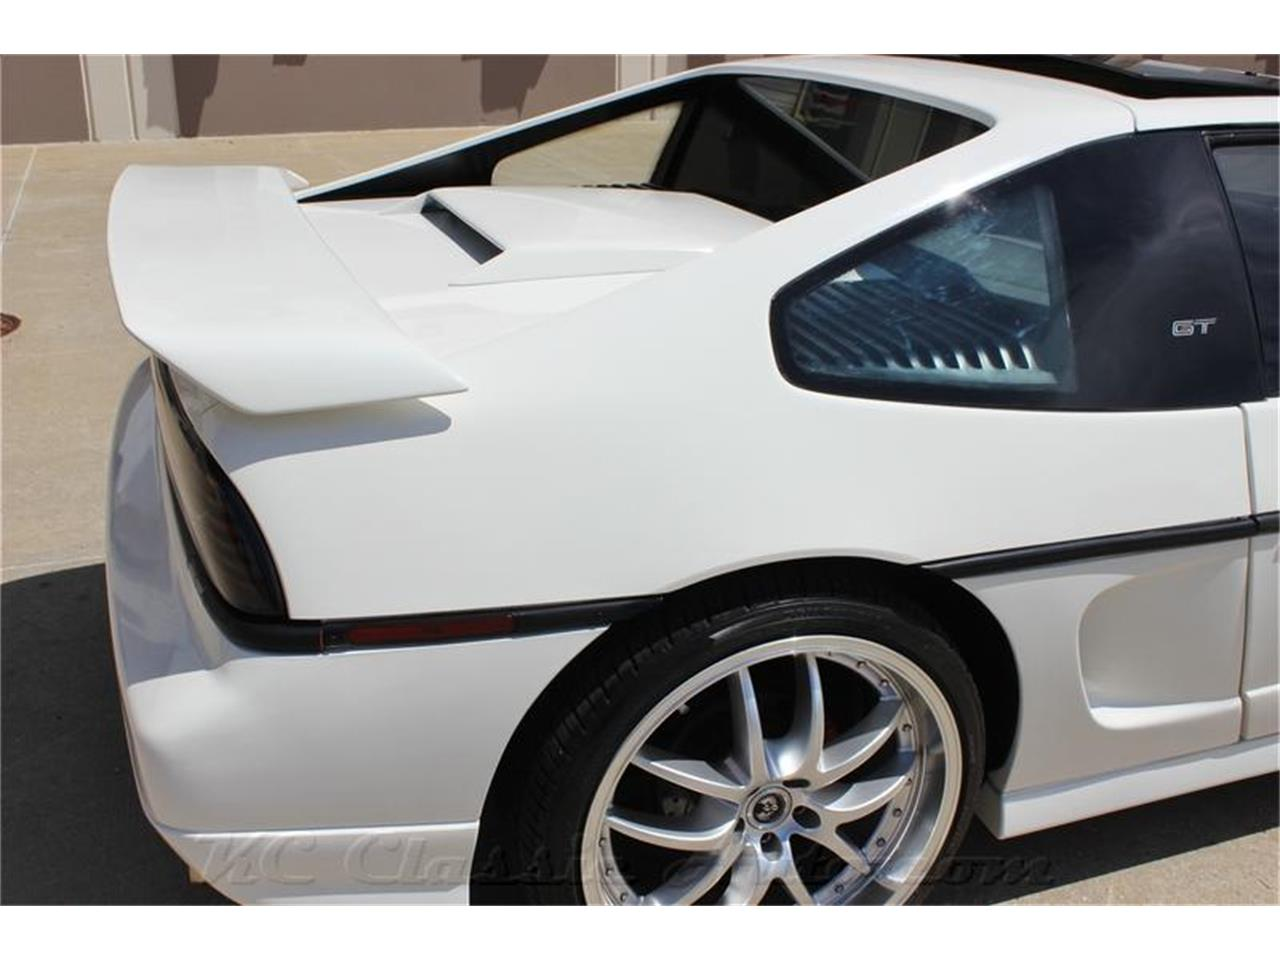 1986 Pontiac Fiero Gt Custom For Sale Cc 882278 Automatic Large Picture Of 86 Iwrq